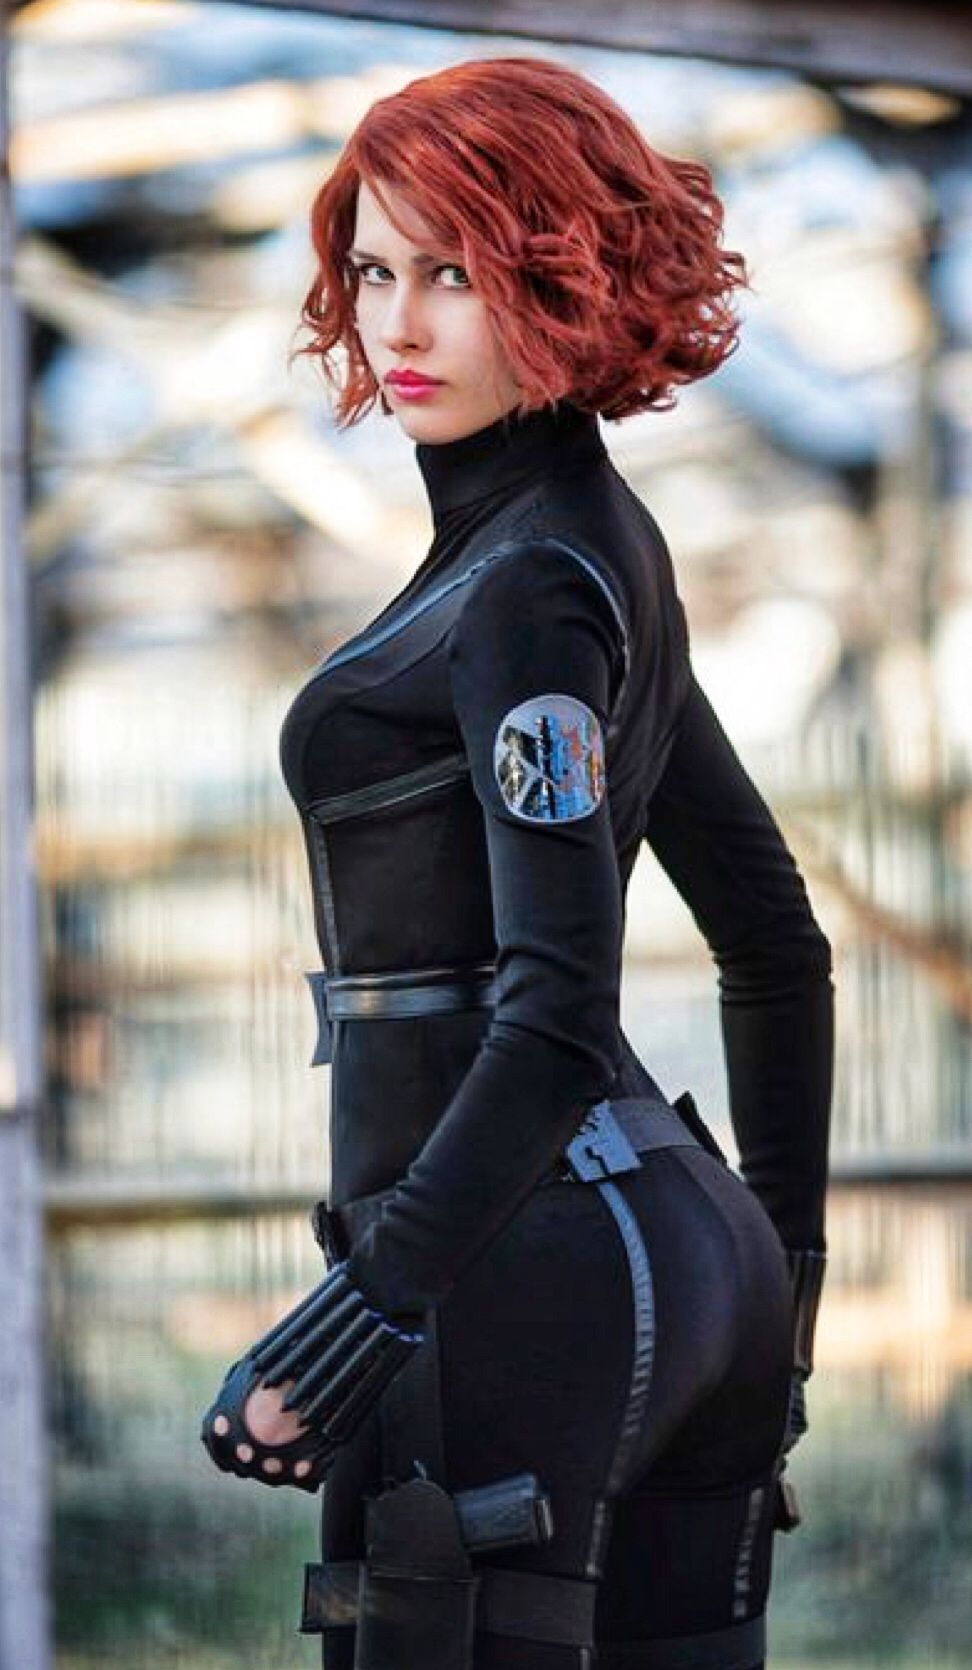 Pin by Doosan's Dashboard on COSPLAY: Only the BEST ...